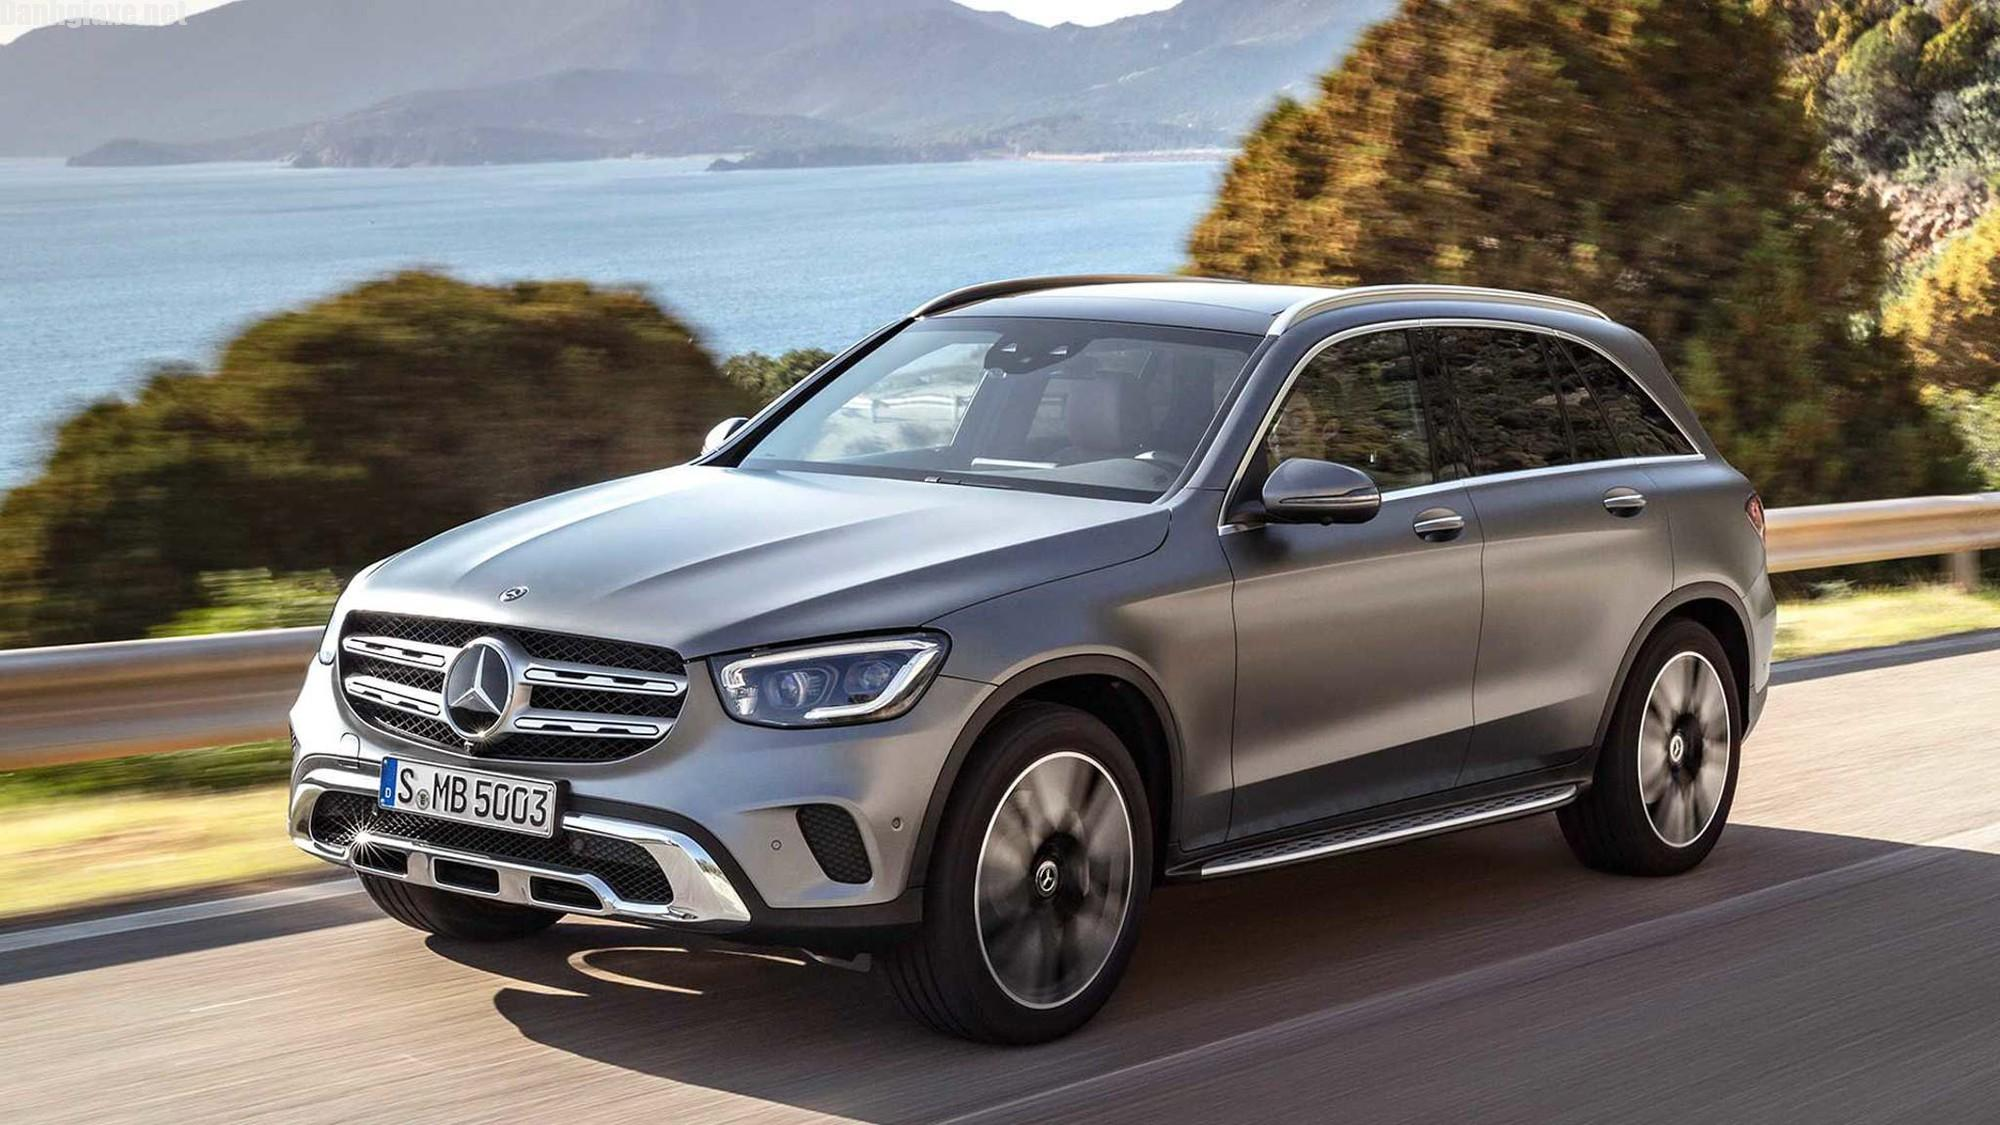 Mercedes Benz GLC 200